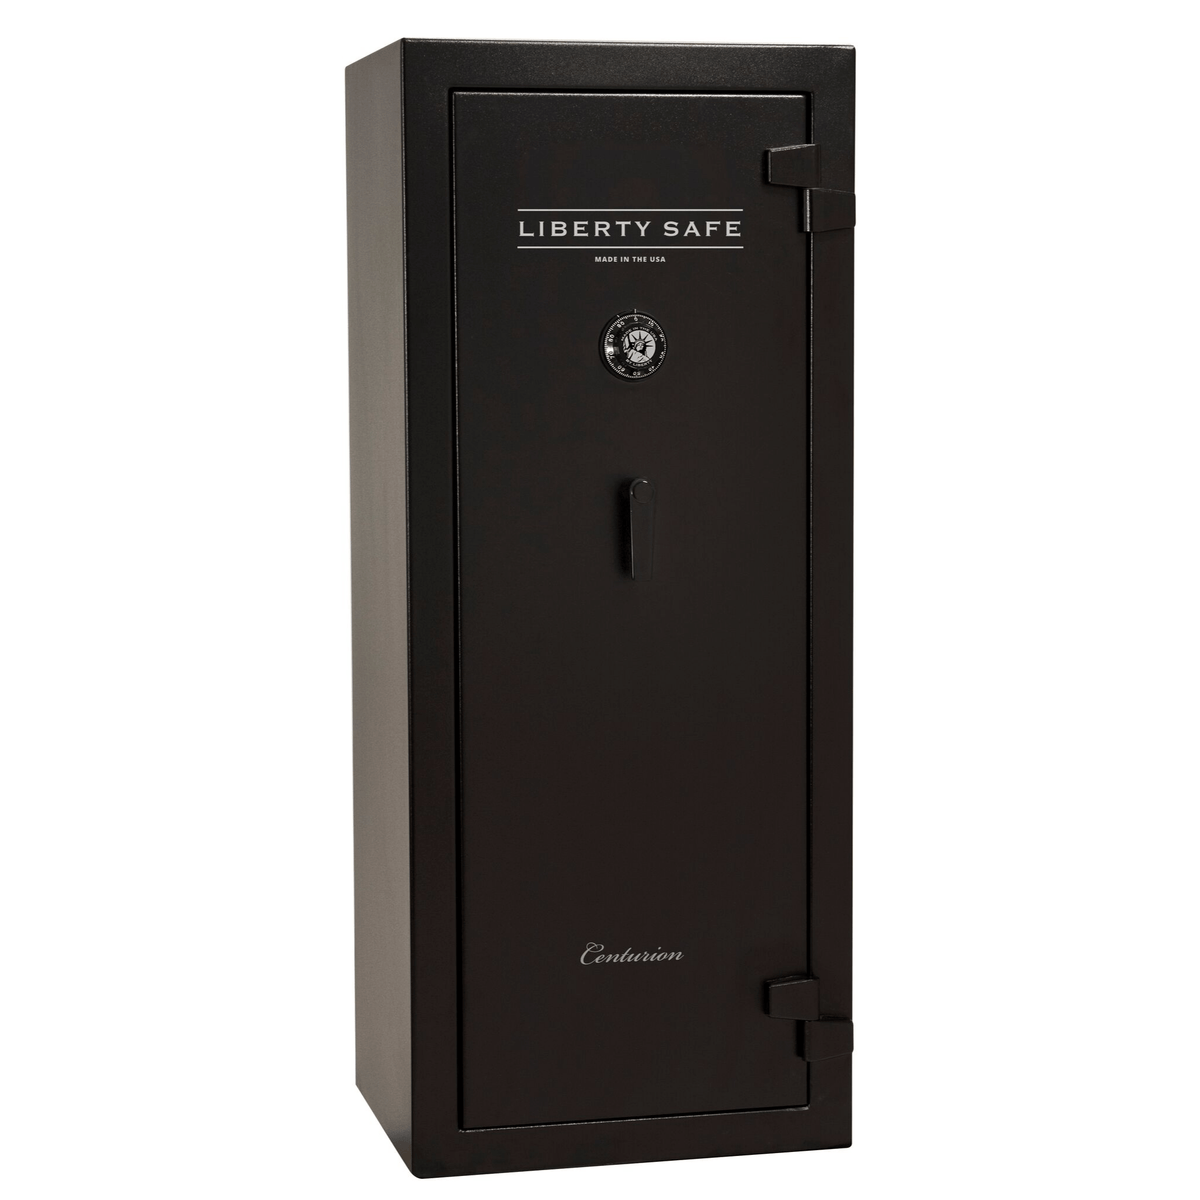 "Centurion | 18 | Level 1 Security | 30 Minute Fire Protection | Black | Black Mechanical Lock | 59.5""(H) x 24.25""(W) x 22""(D)"